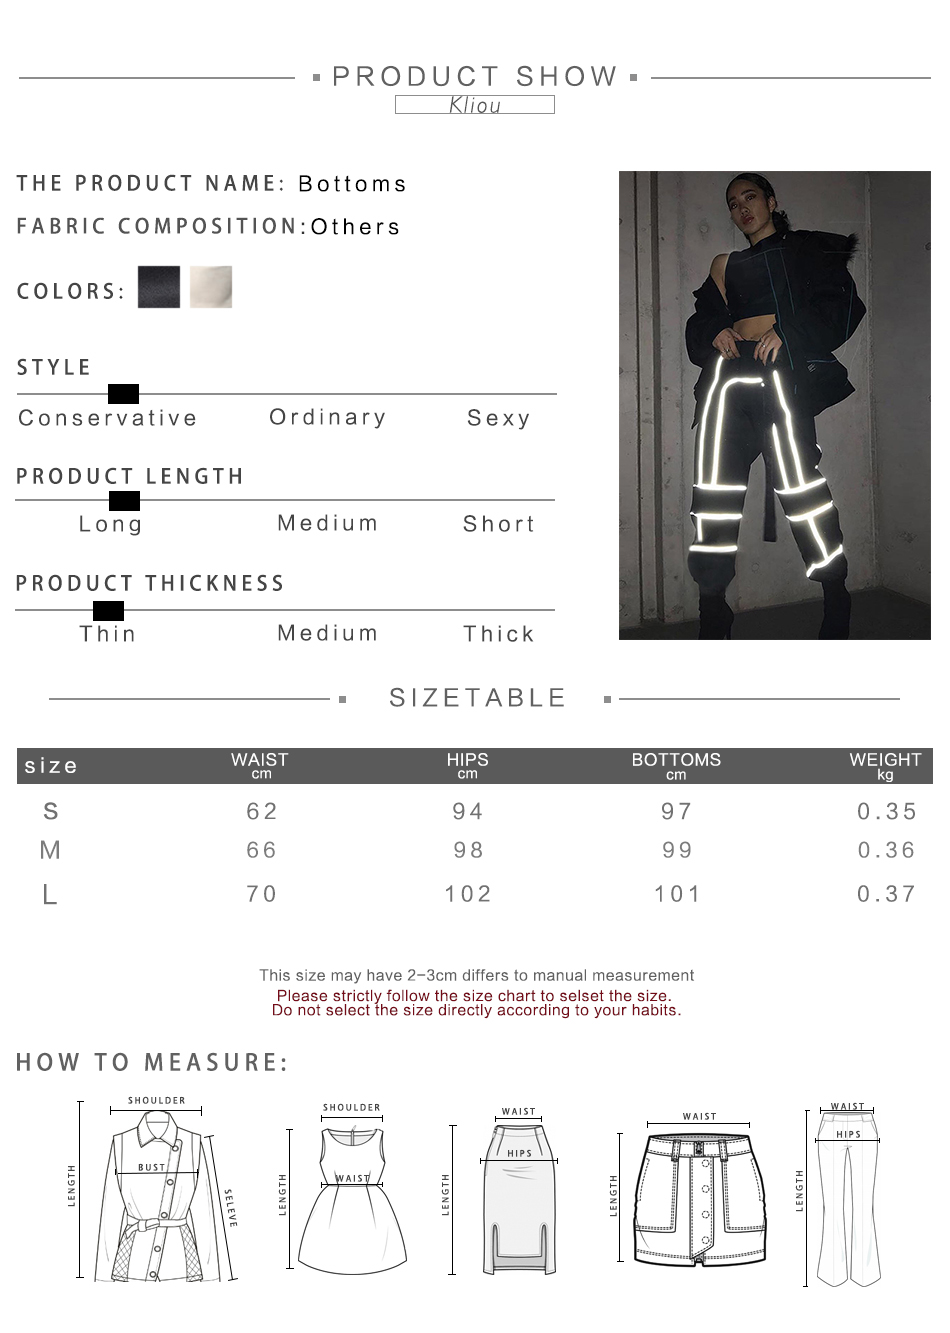 HTB1U3wPae6sK1RjSsrbq6xbDXXaO - Kliou women fashion street Reflective patchwork cargo pants 2019 new arrival zipper fly with sashes pockets knitted trousers